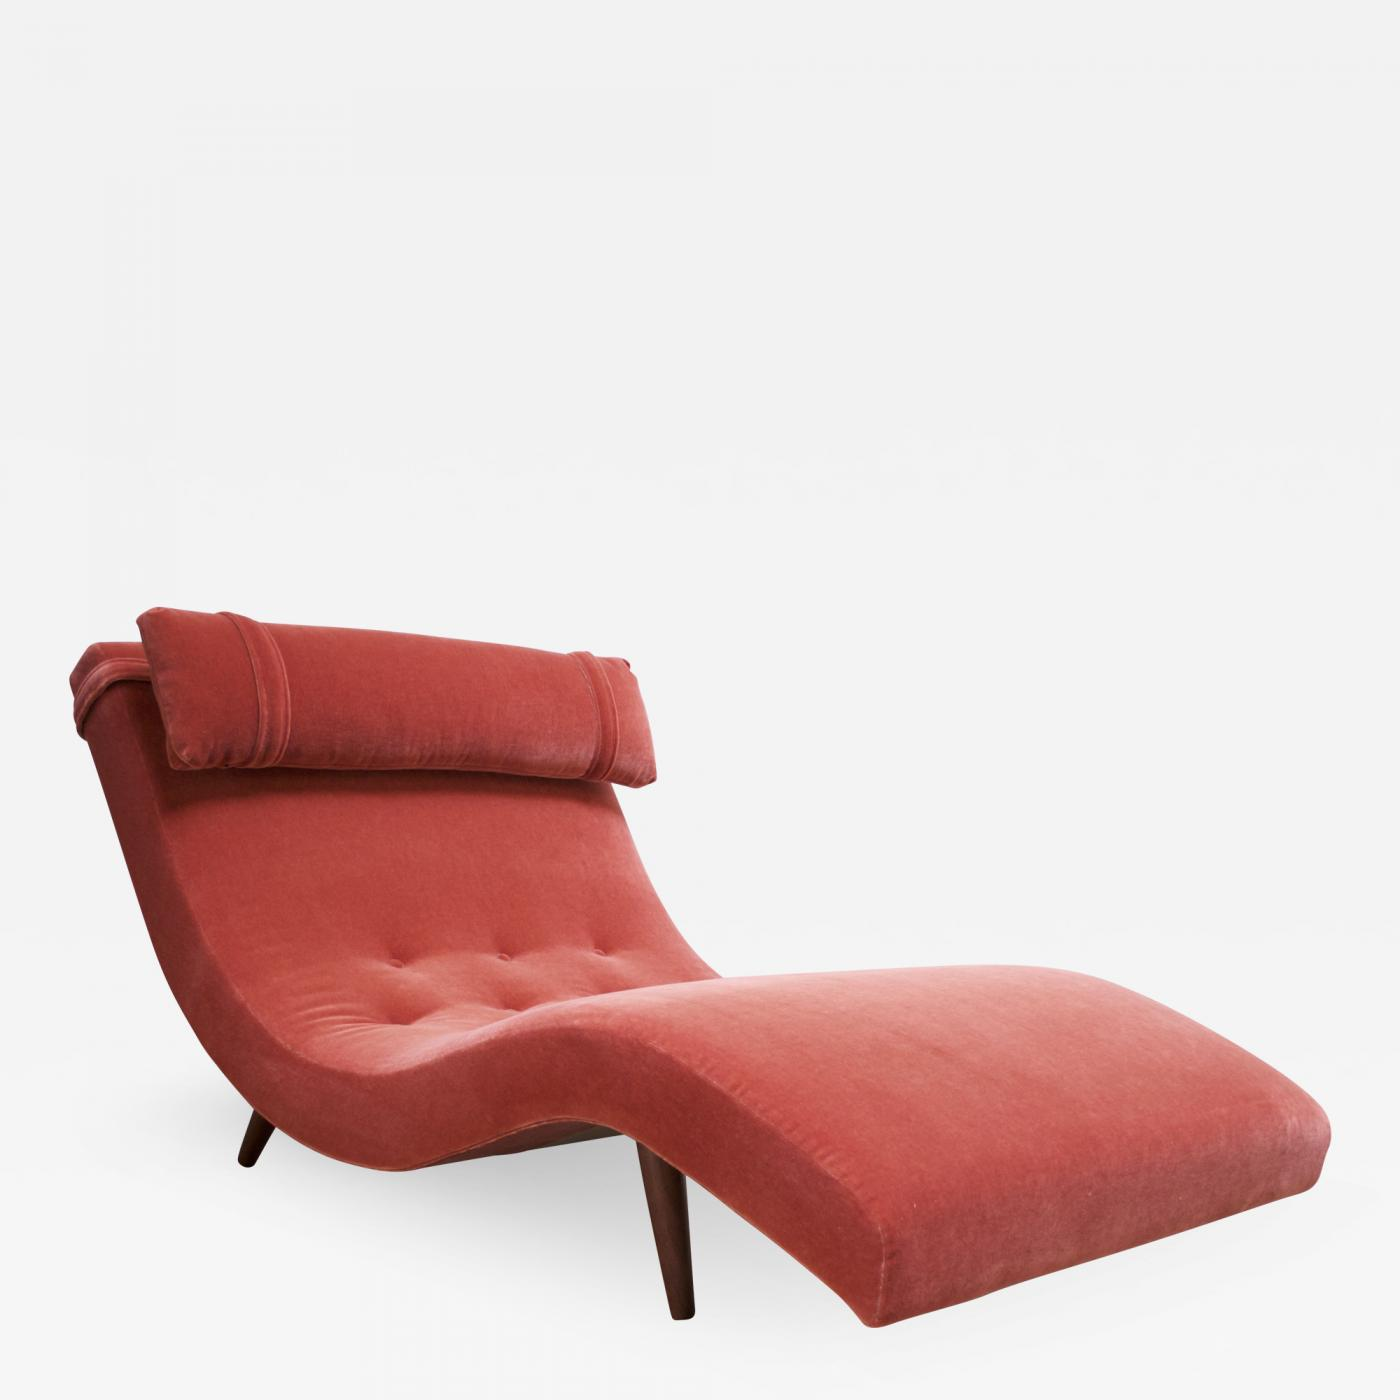 Superb Adrian Pearsall Adrian Pearsall For Craft Associates Wave Chaise Lounge In Coral Mohair Short Links Chair Design For Home Short Linksinfo